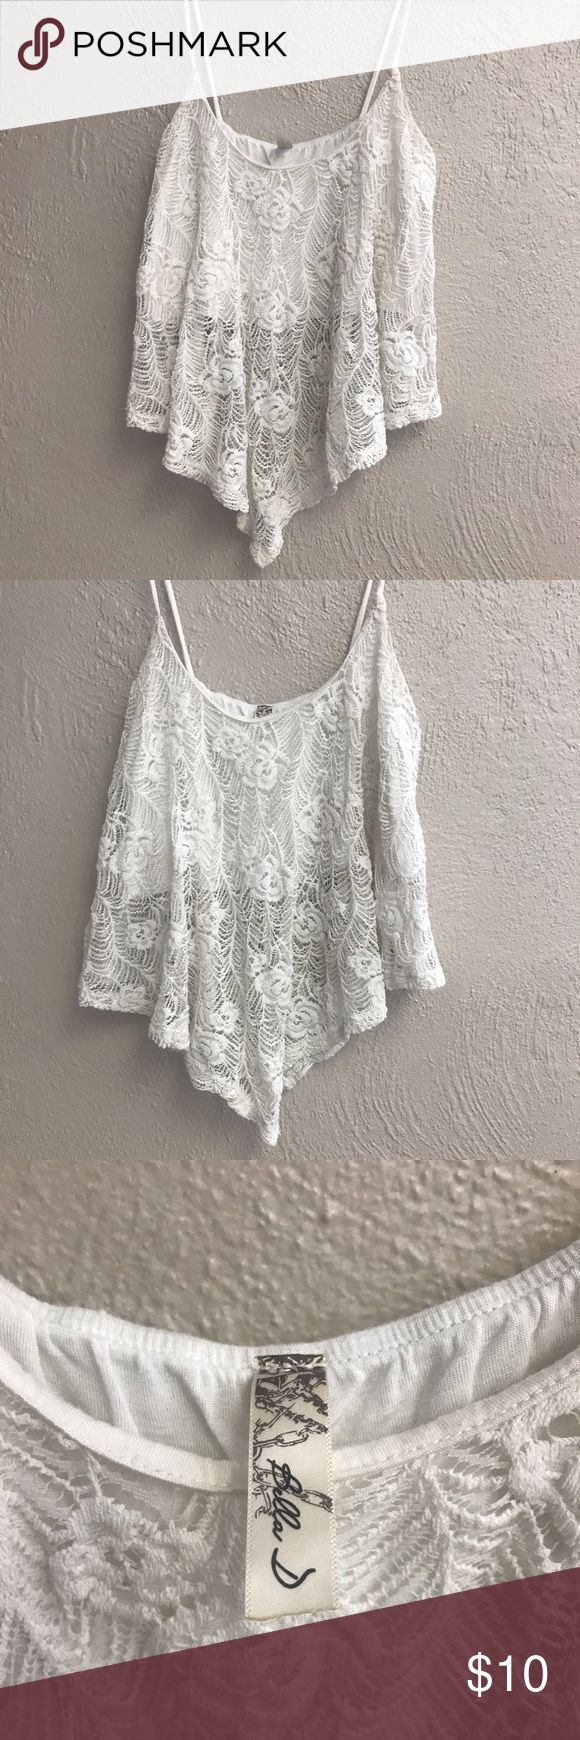 White lacey crop top Super cute lace crop top with bra insert and low hanging in front Tops Crop Tops